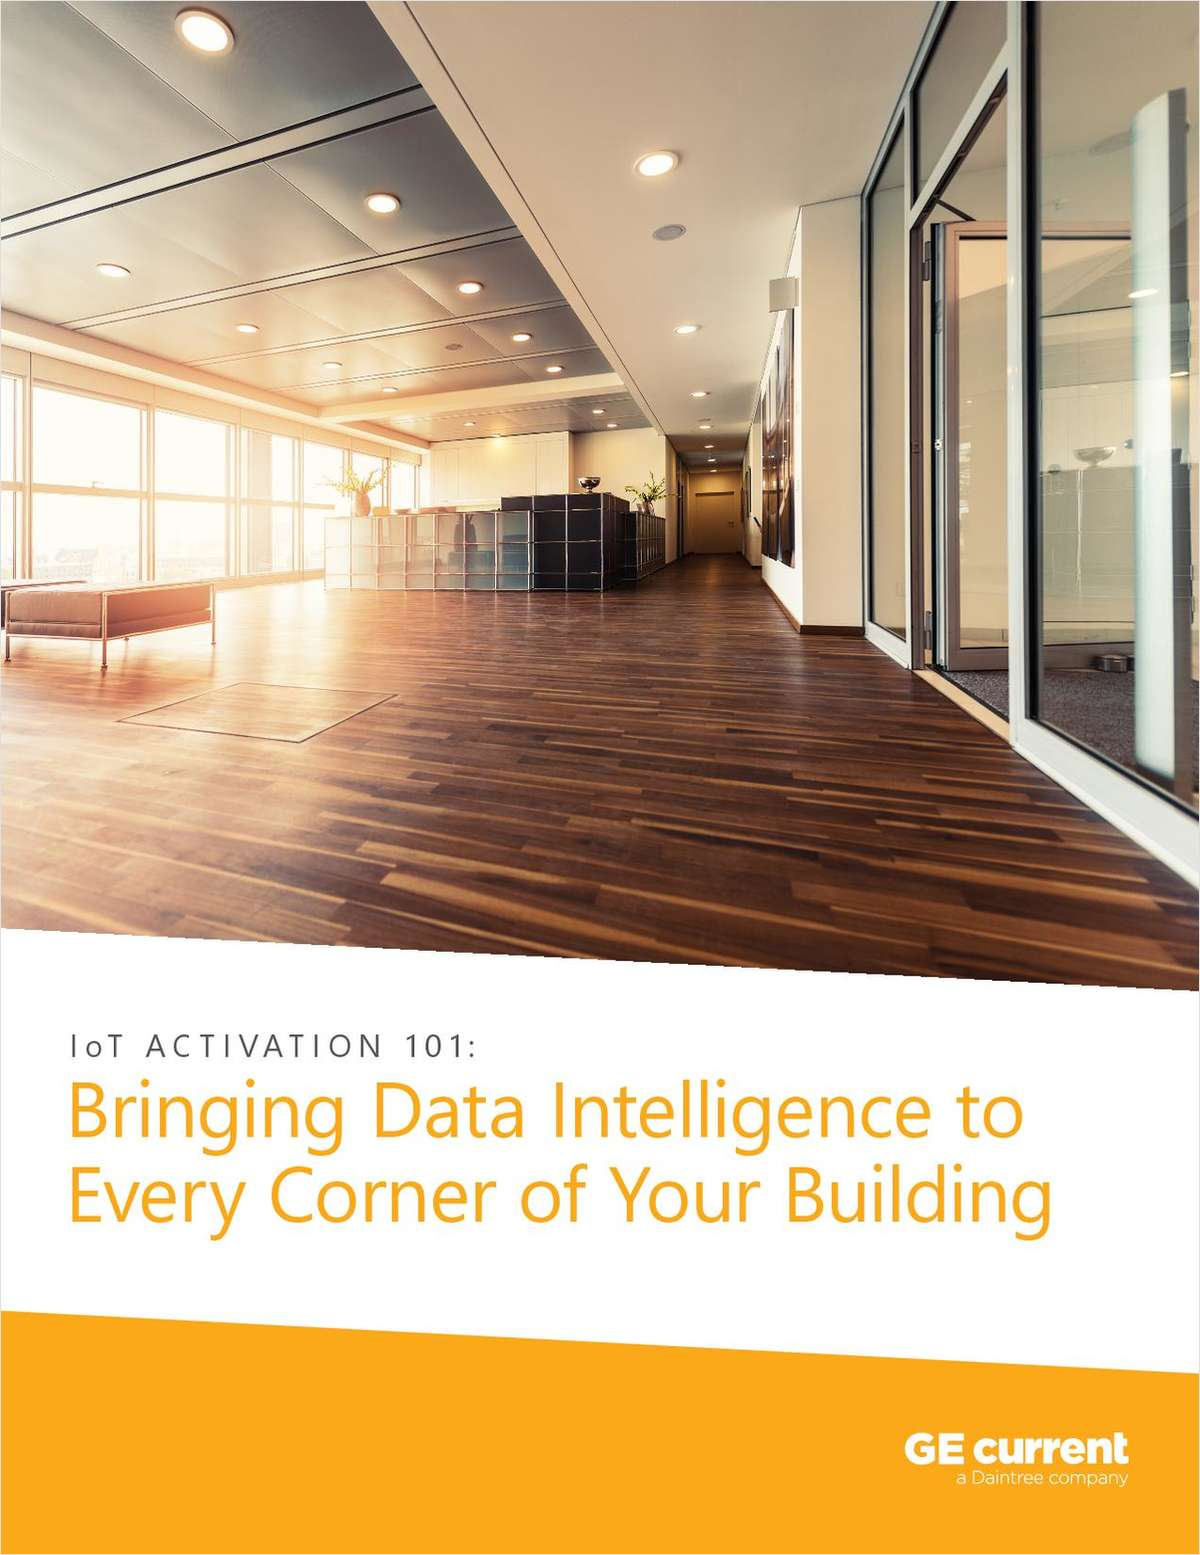 IoT Activation 101: Bringing Data Intelligence to Every Corner of Your Building